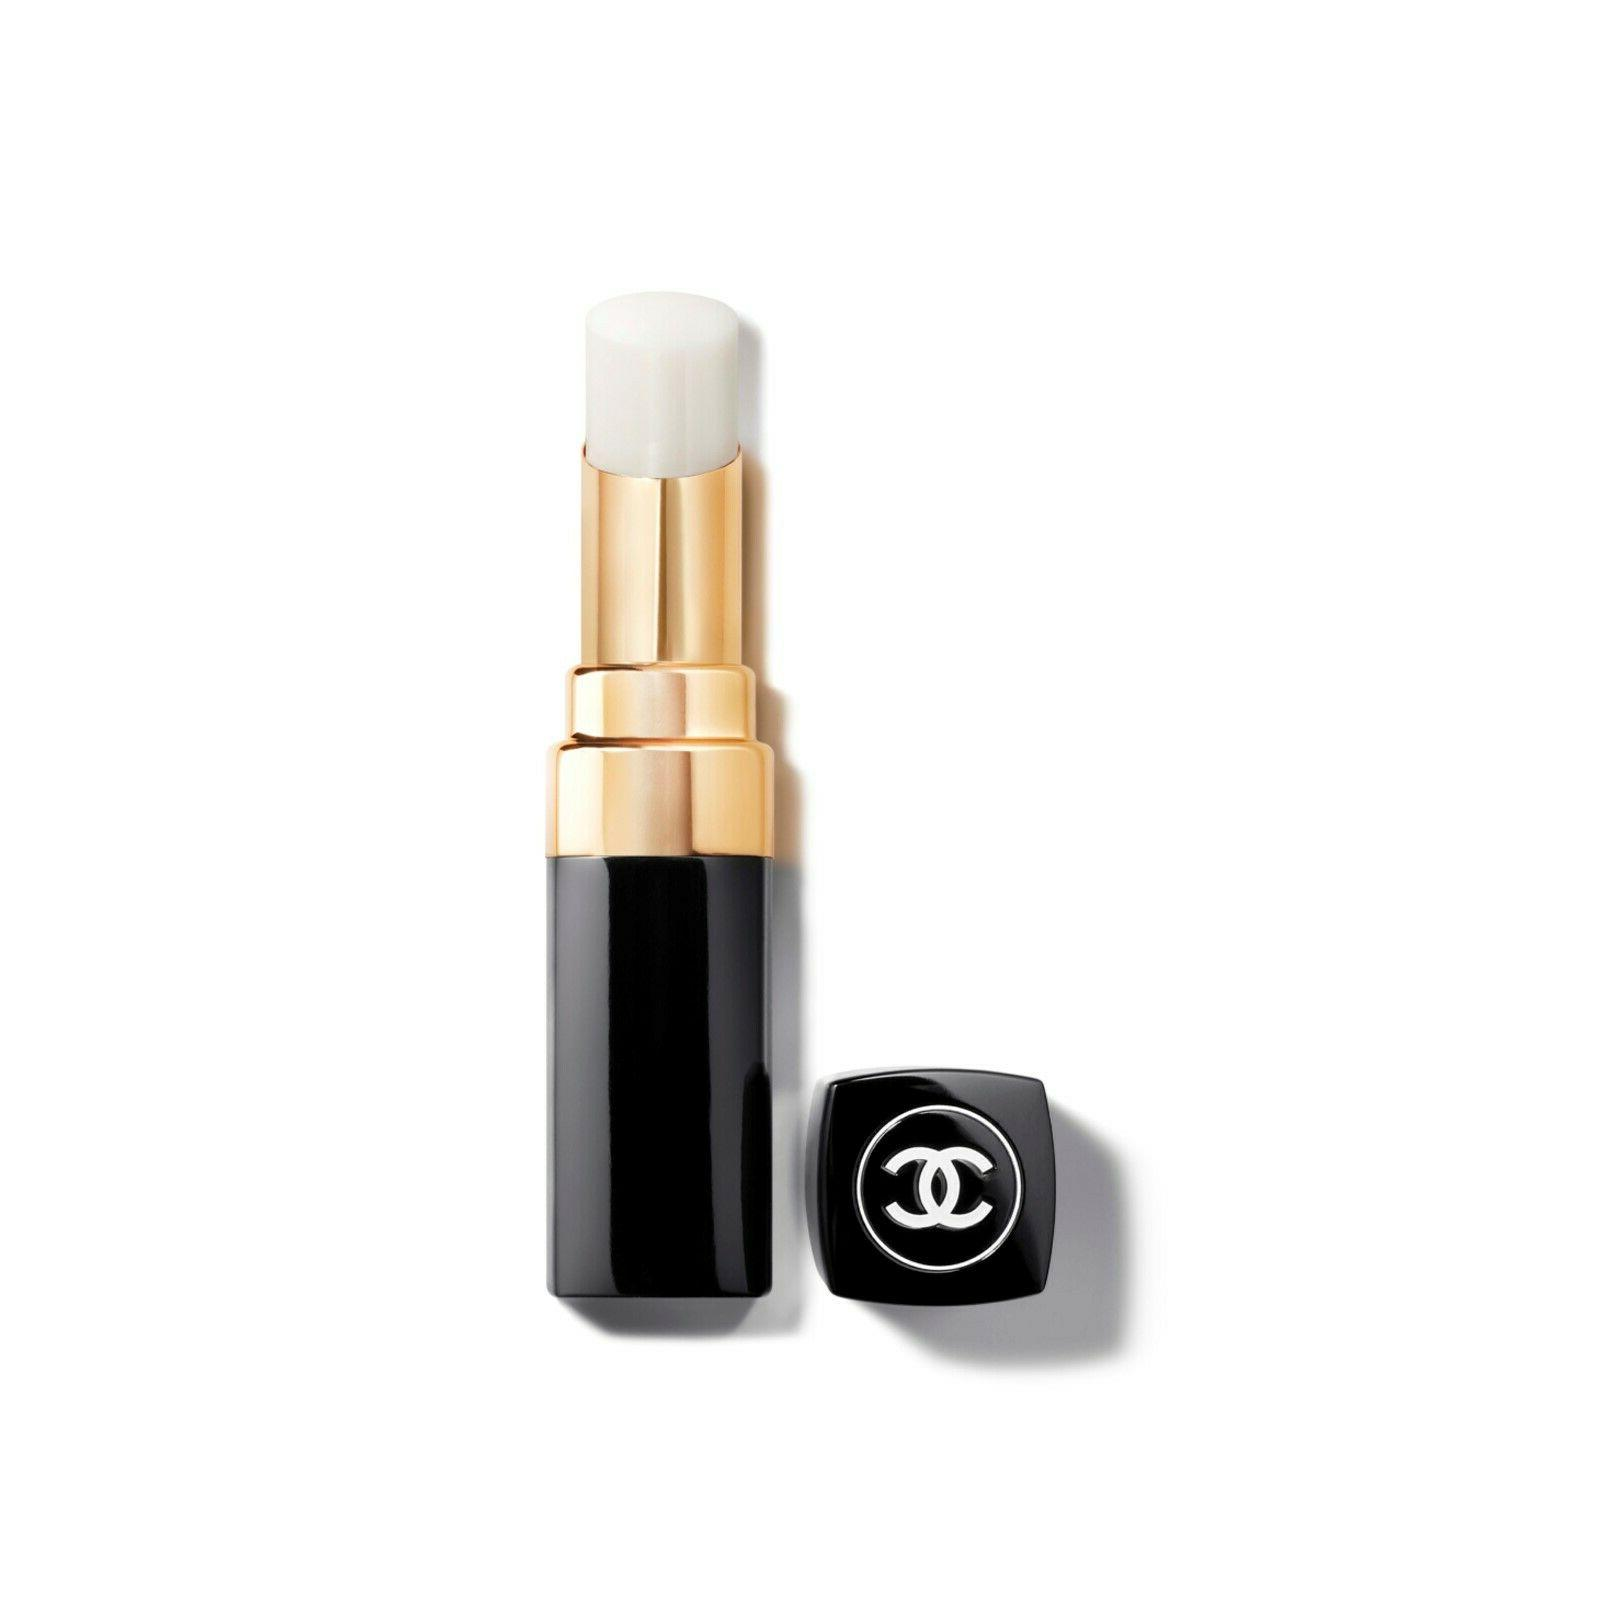 CHANEL HYDRATING CARE MOISTURIZING